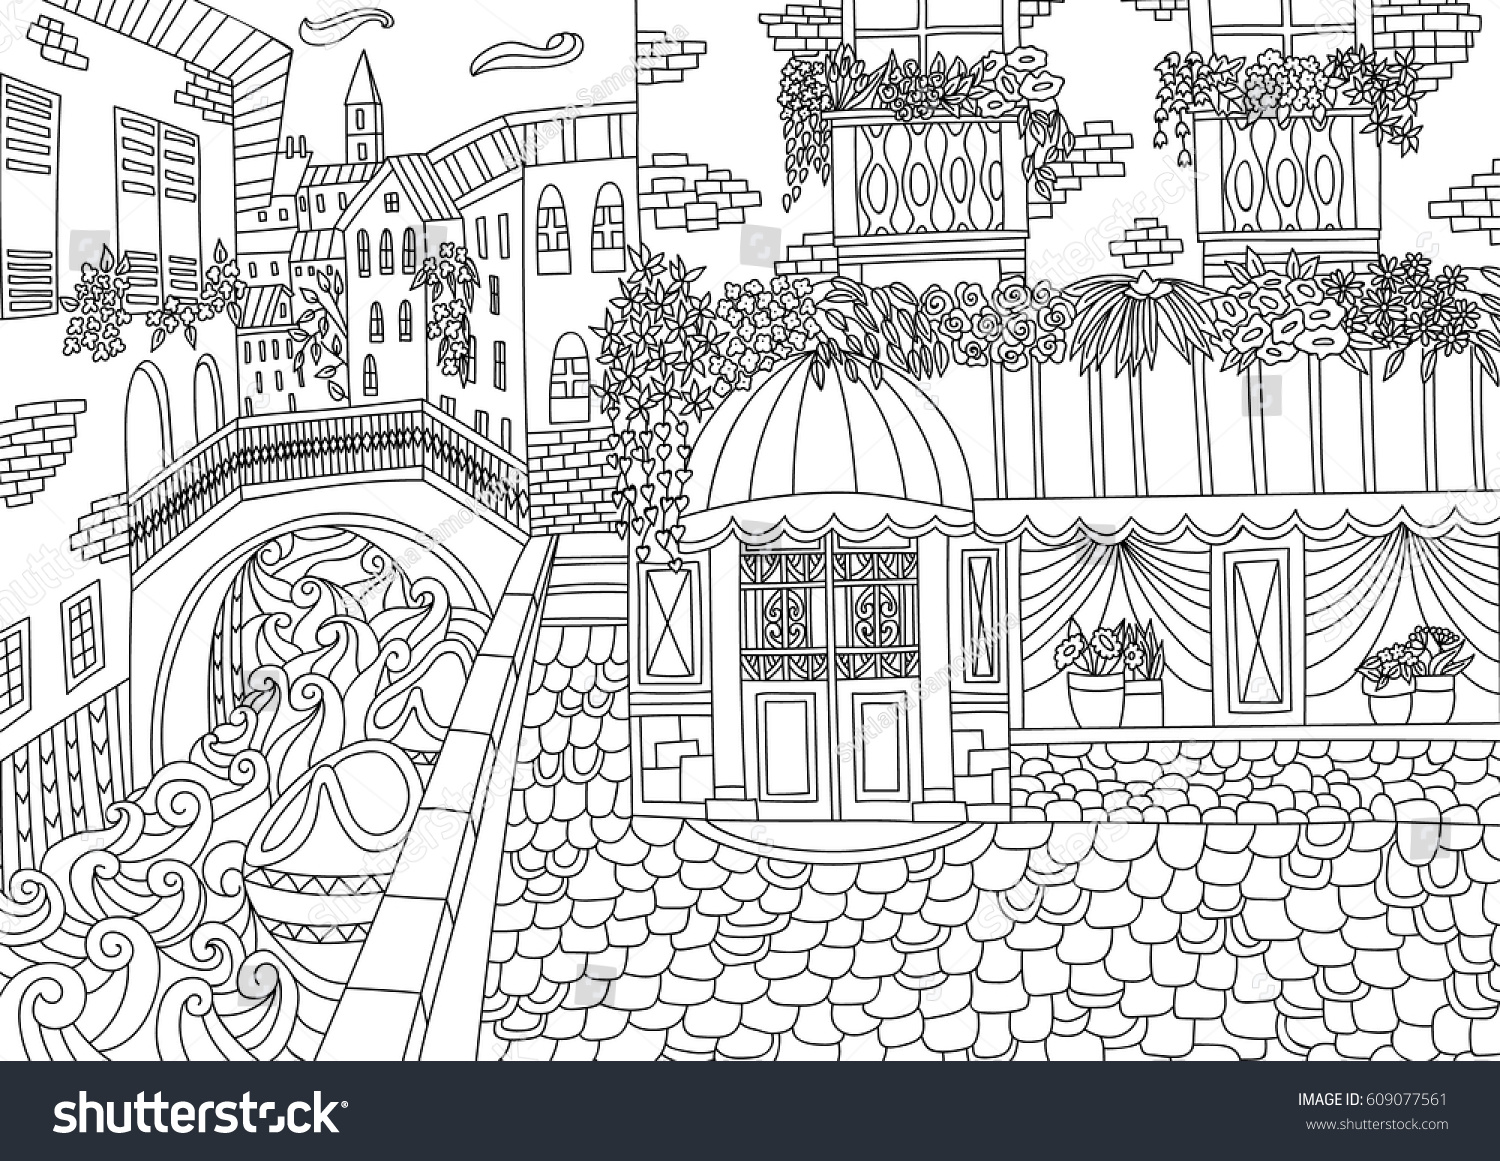 Coloring For Adult With Venice Italy Page In Line Style European Landscapes